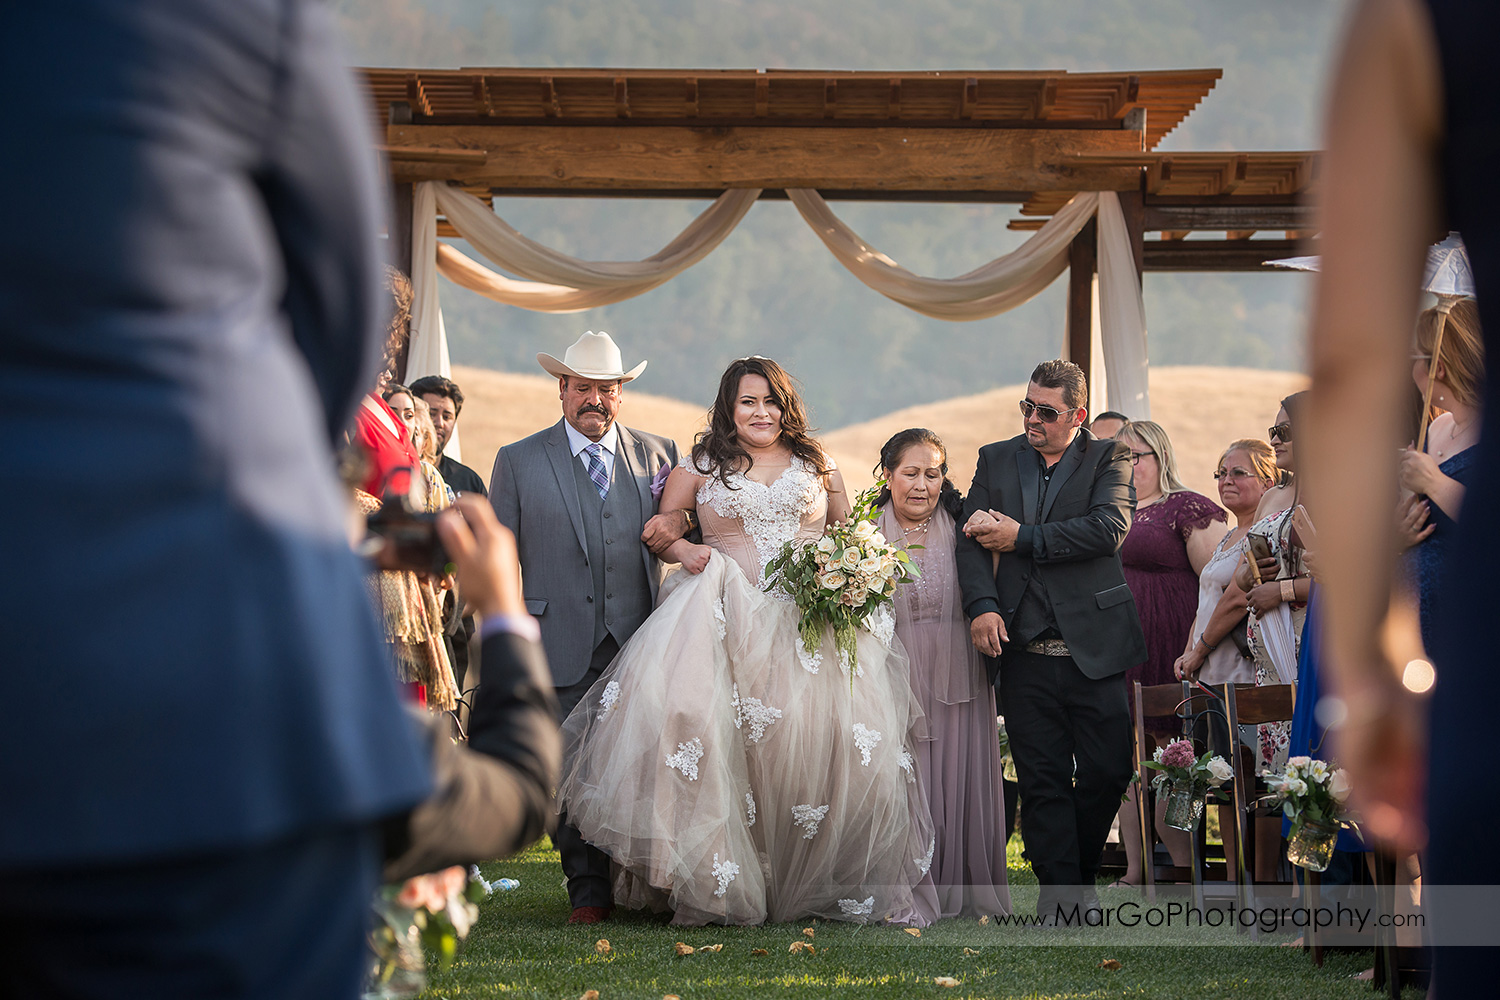 bride walking down the aisle with parents during wedding ceremony at Taber Ranch Vineyards